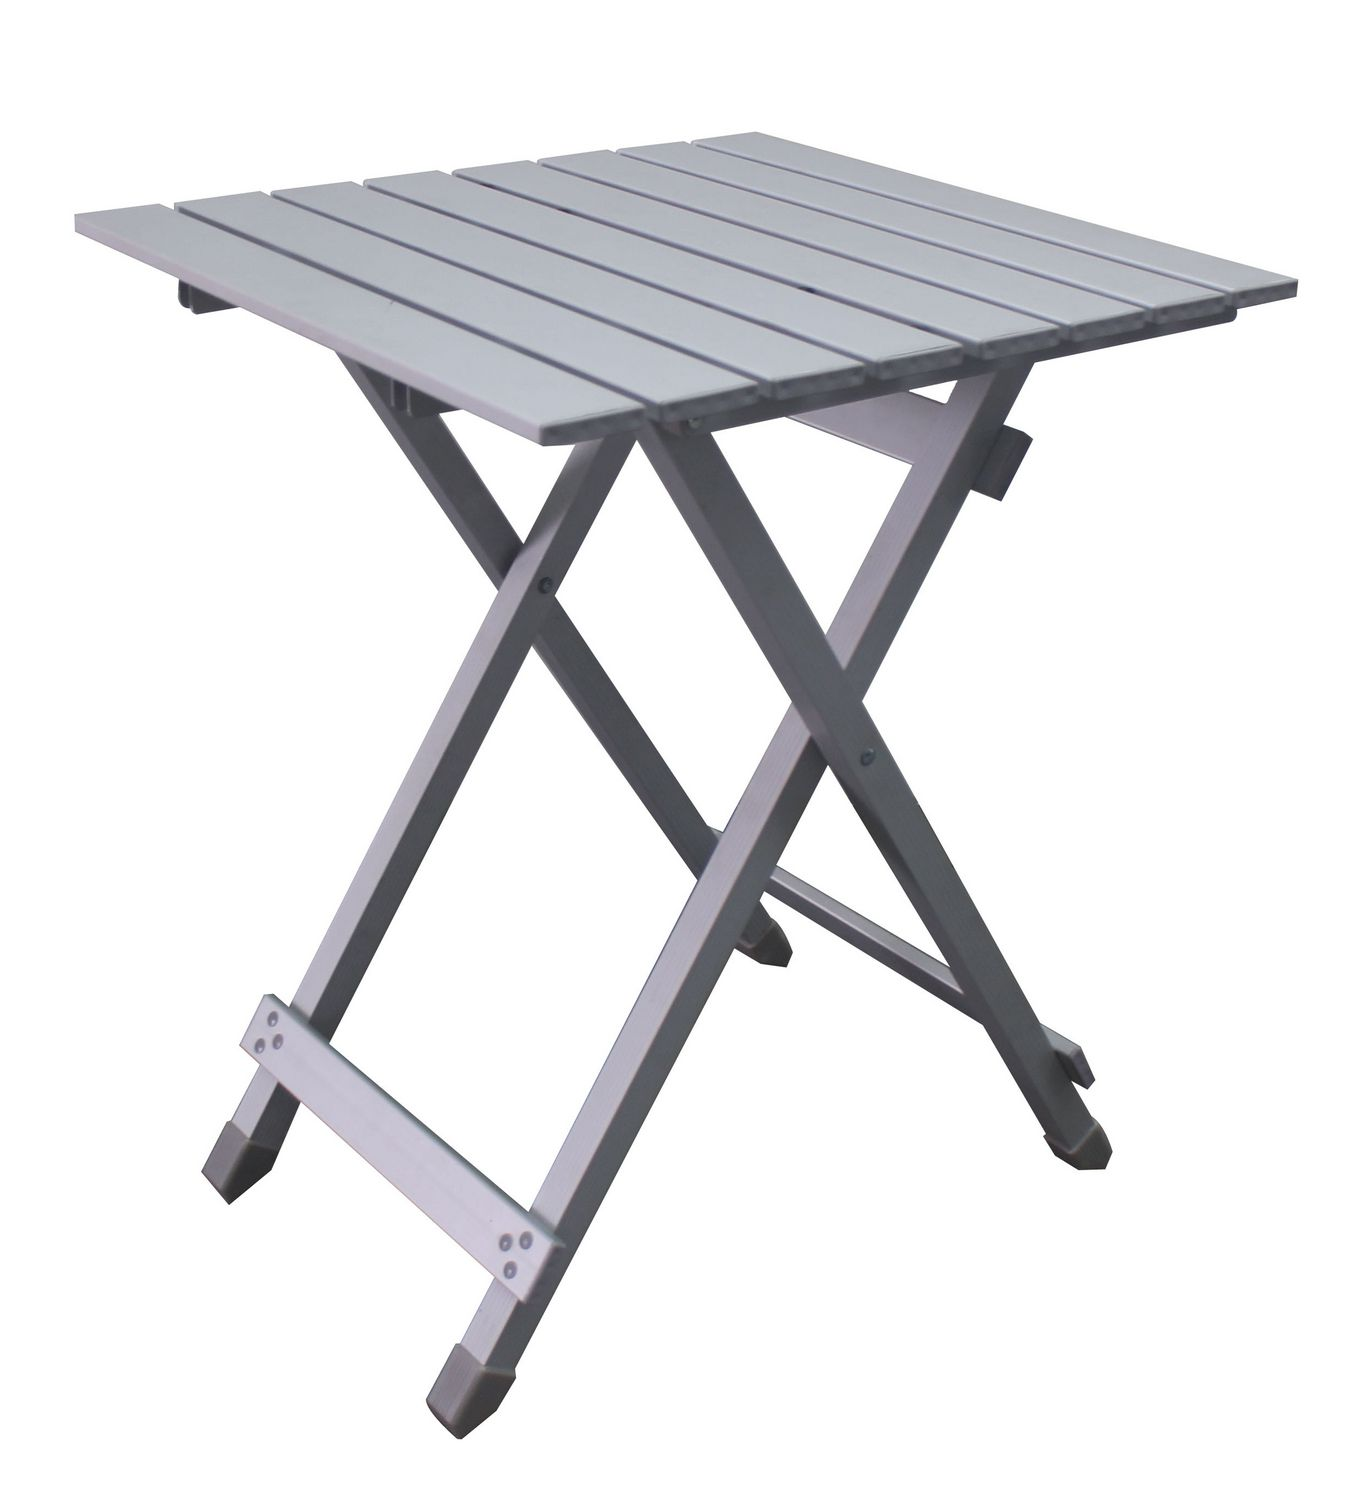 Table Aluminium Pliante Table Pliante Ozark Trail En Aluminium